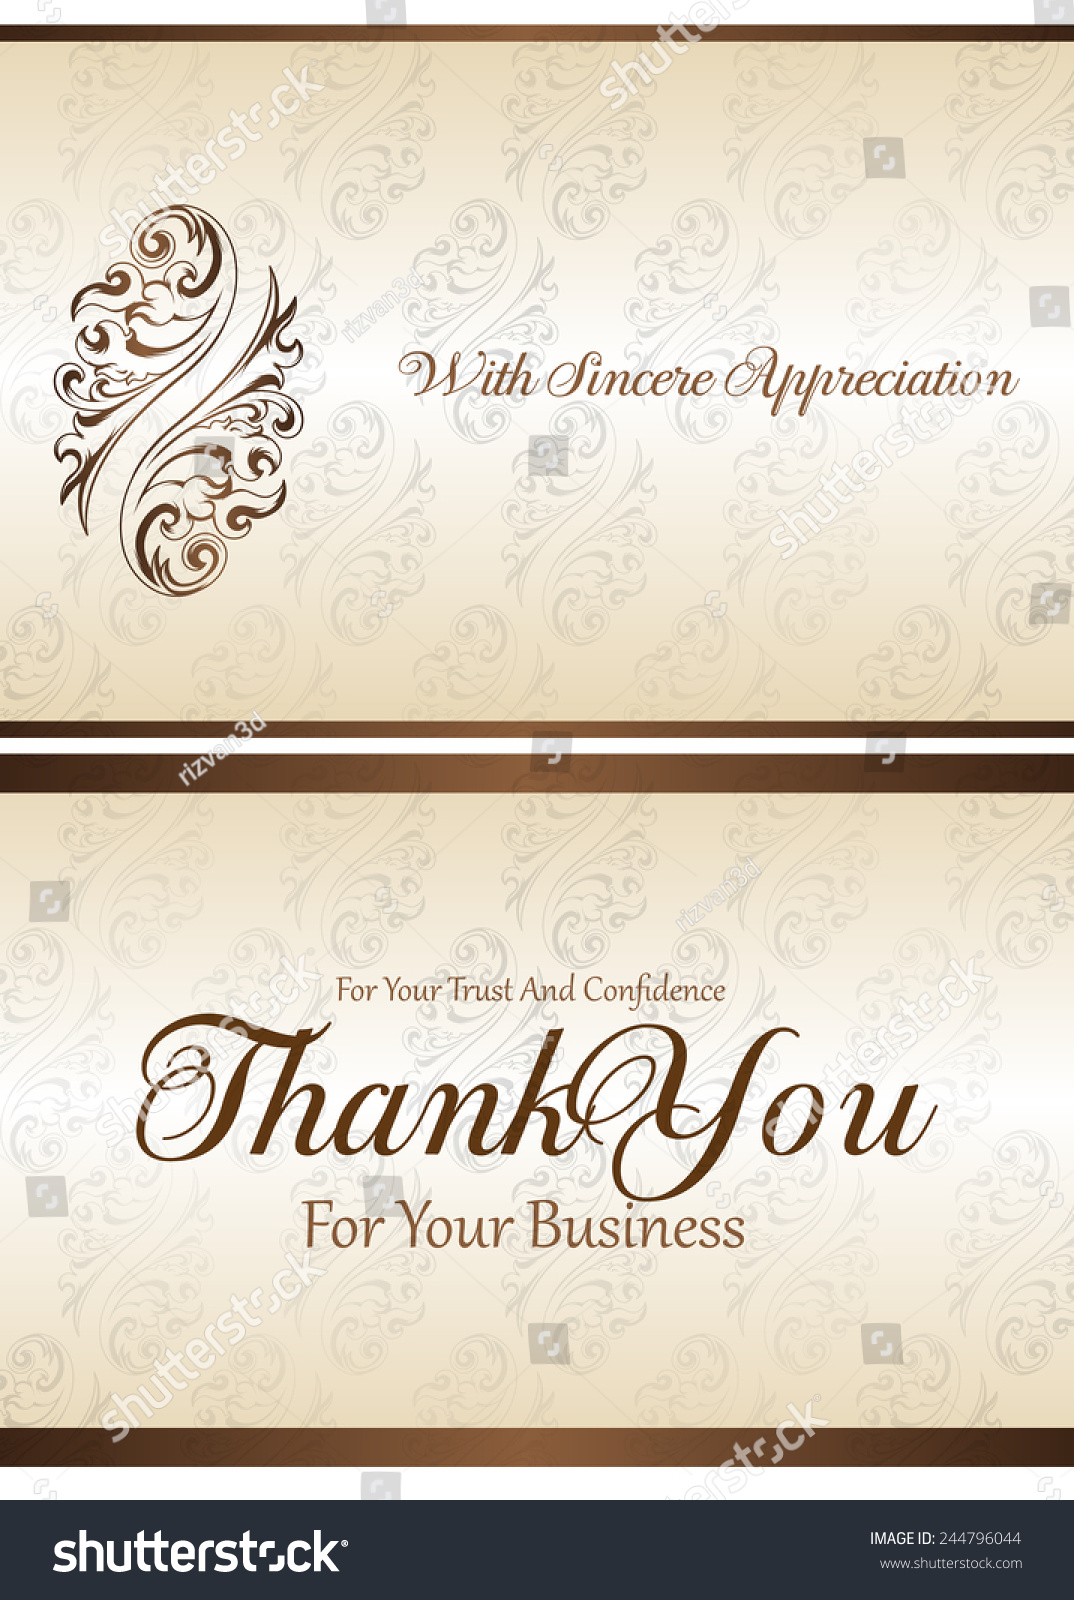 Thank You You Business Card Stock Vector 244796044 - Shutterstock